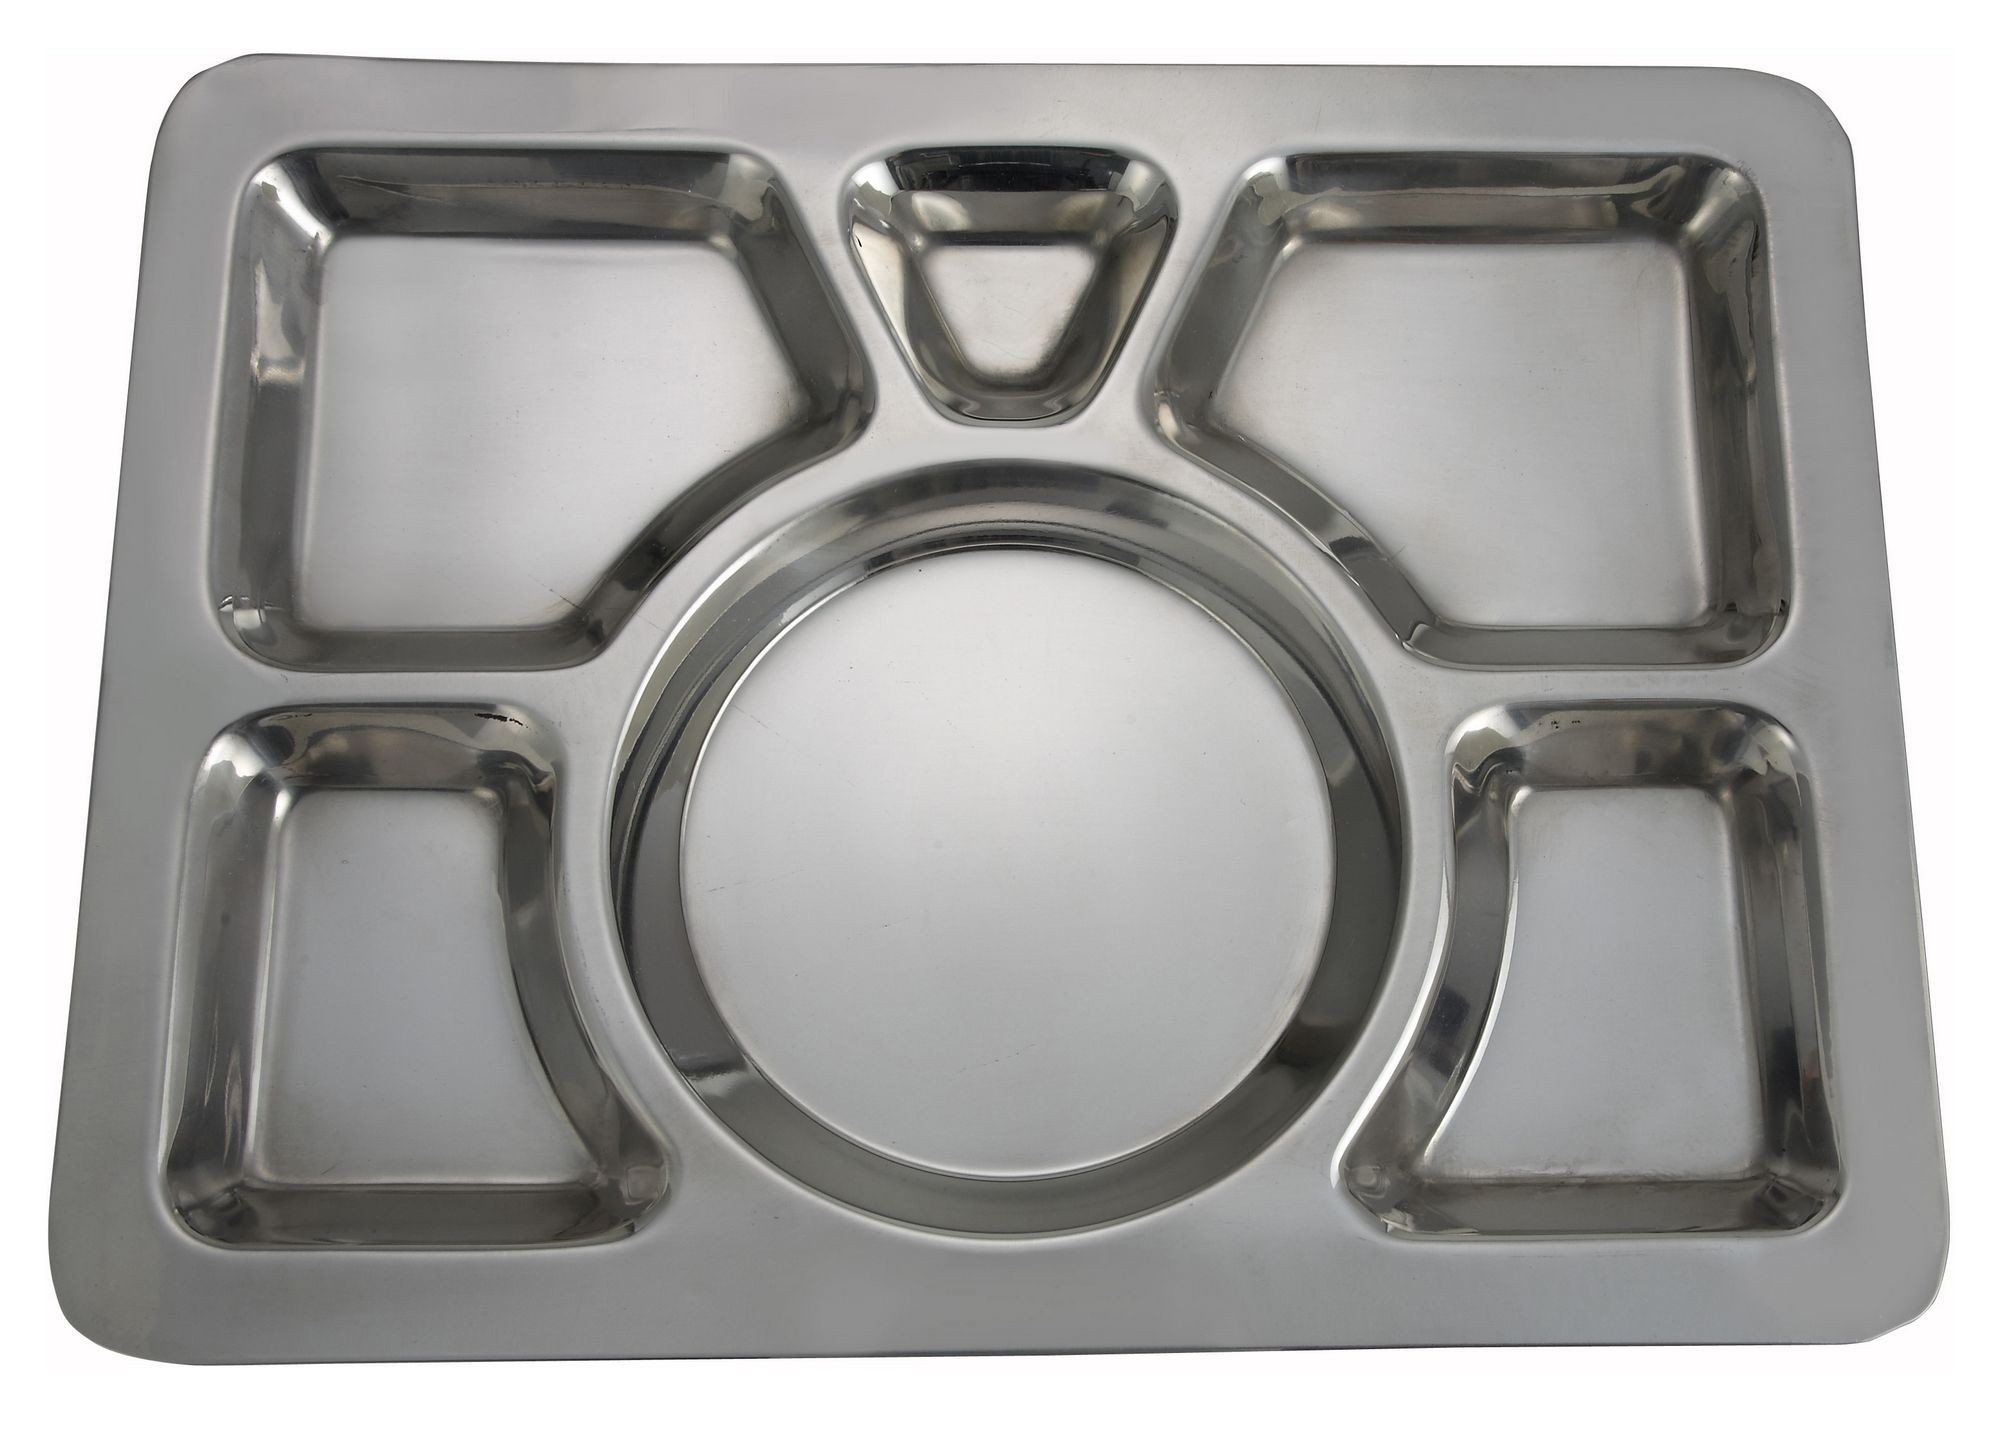 Stainless Steel 6-Compartment Mess Tray - Style A